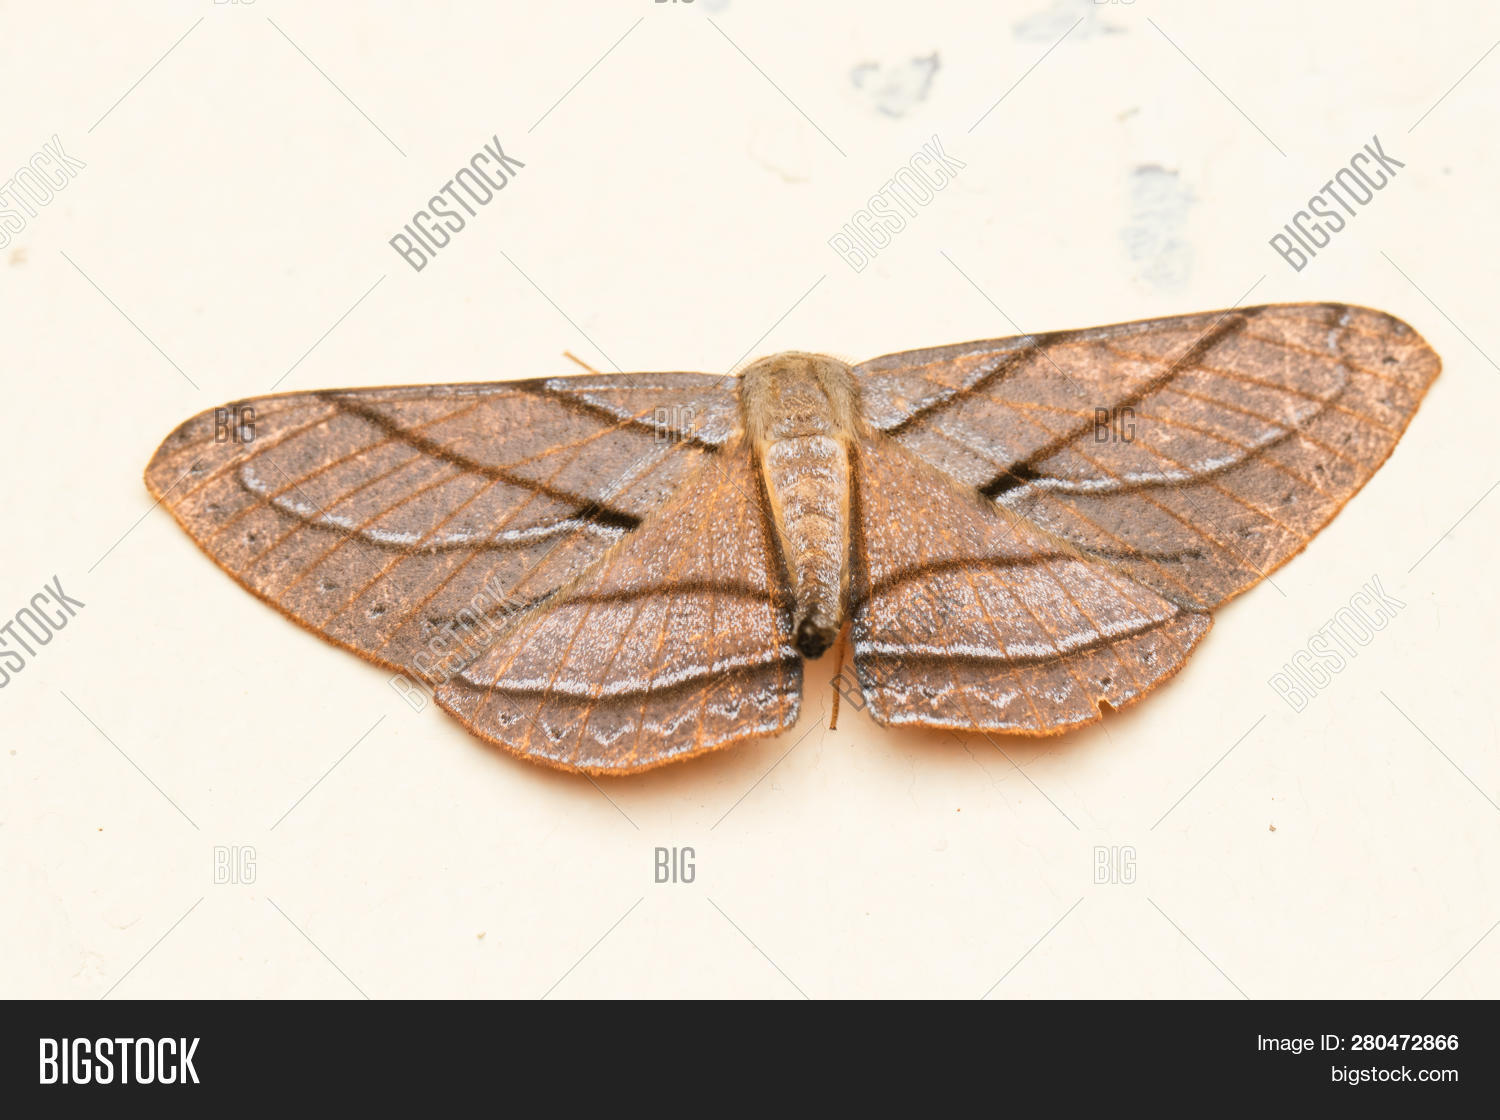 animal,antenna,arthropod,background,black,british,brown,bug,butterfly,close,closeup,cloth,common,emperor,entomology,european,fabric,fauna,focus,geometridae,gray,green,hairy,insect,invertebrate,lepidoptera,macro,moth,nature,night,noctuid,nocturnal,pest,photography,red,saturnia,saturniid,science,selective,small,species,spotted,to,uk,view,white,wild,wildlife,wing